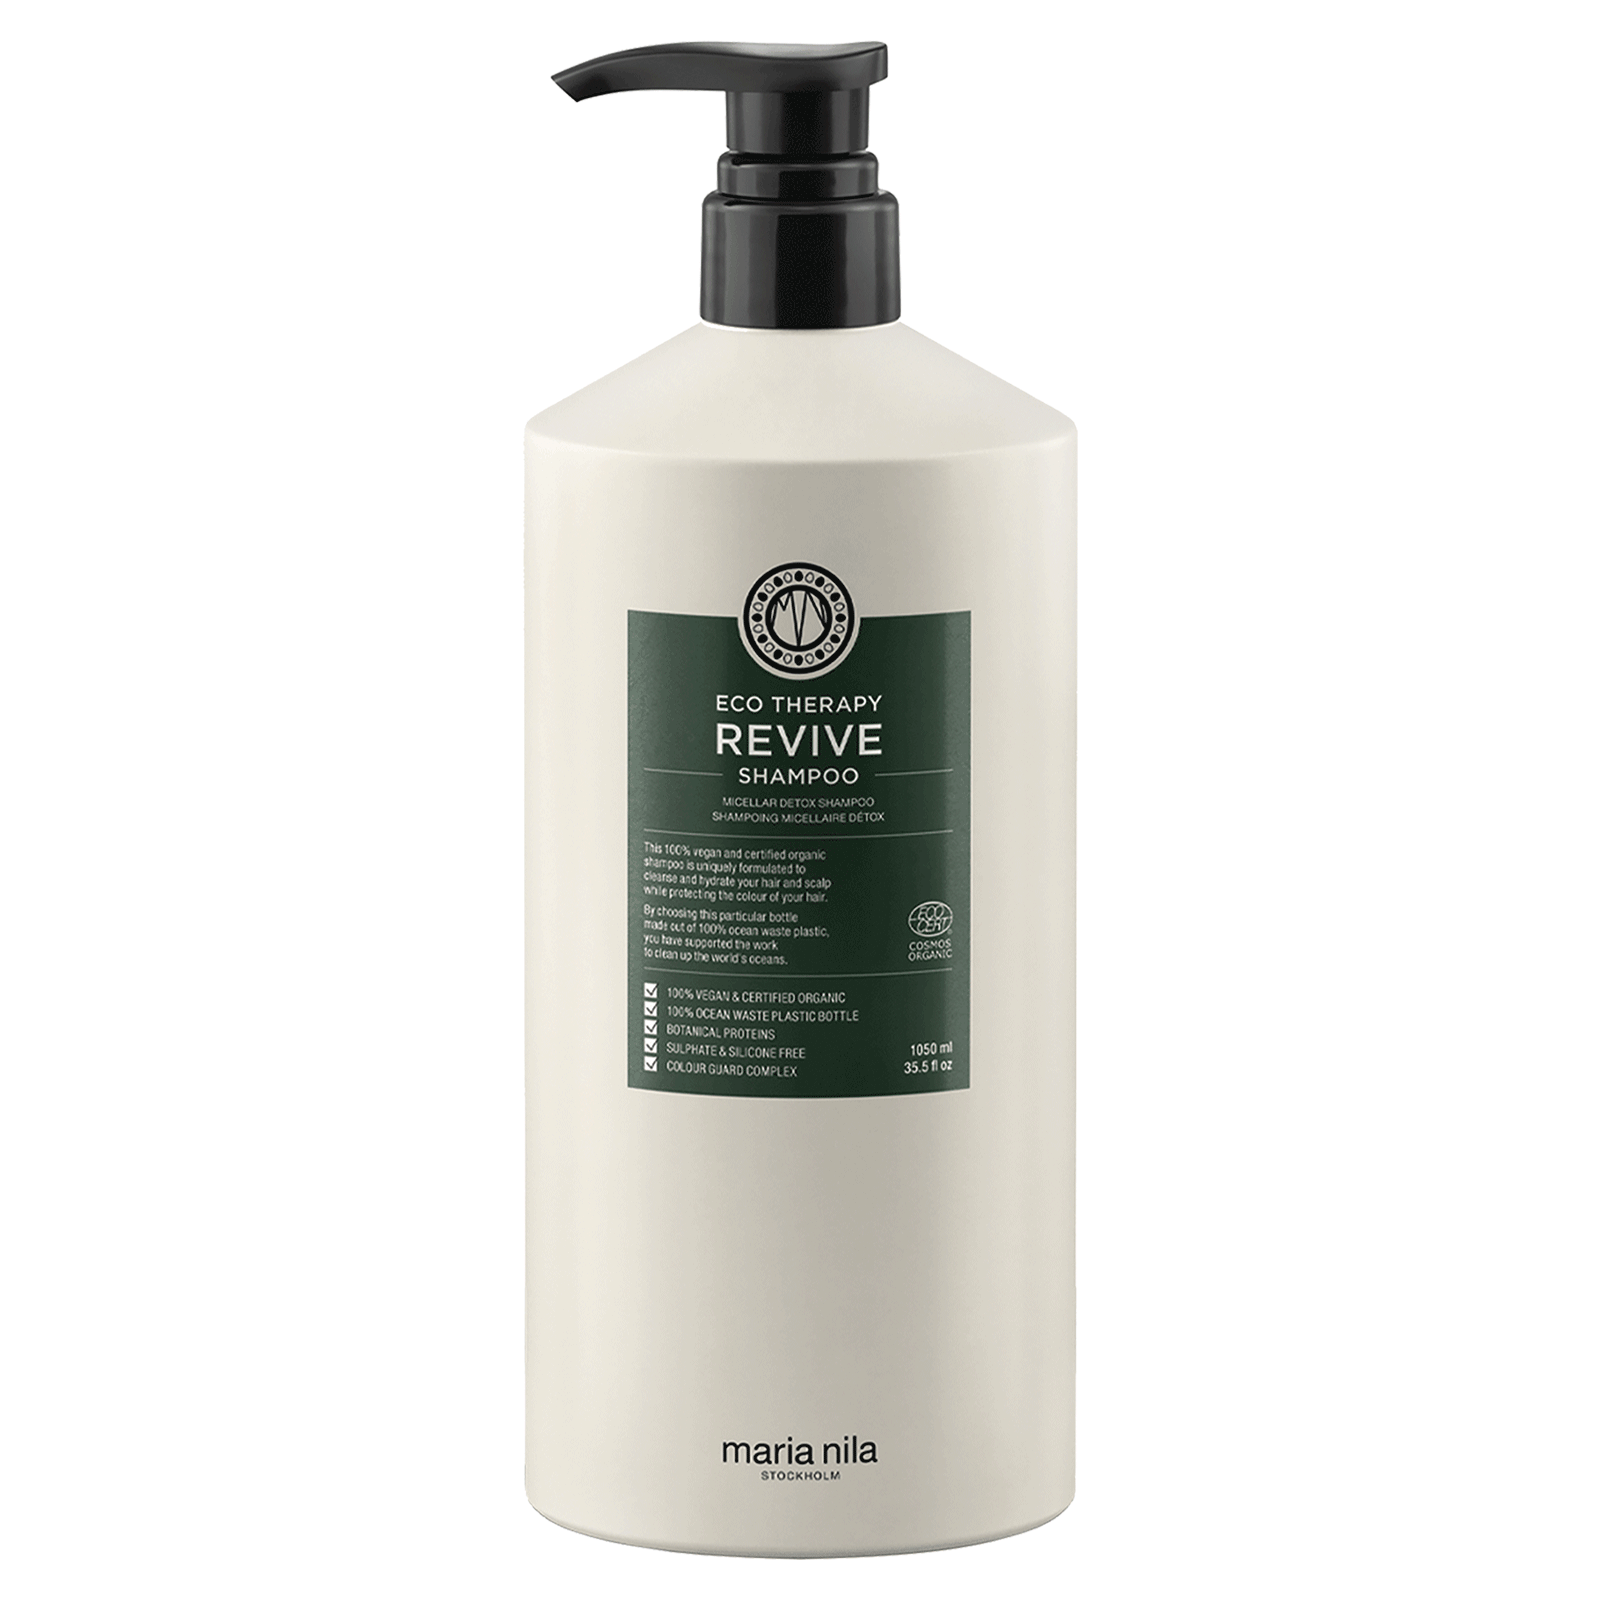 Eco Therapy Revive Shampoo